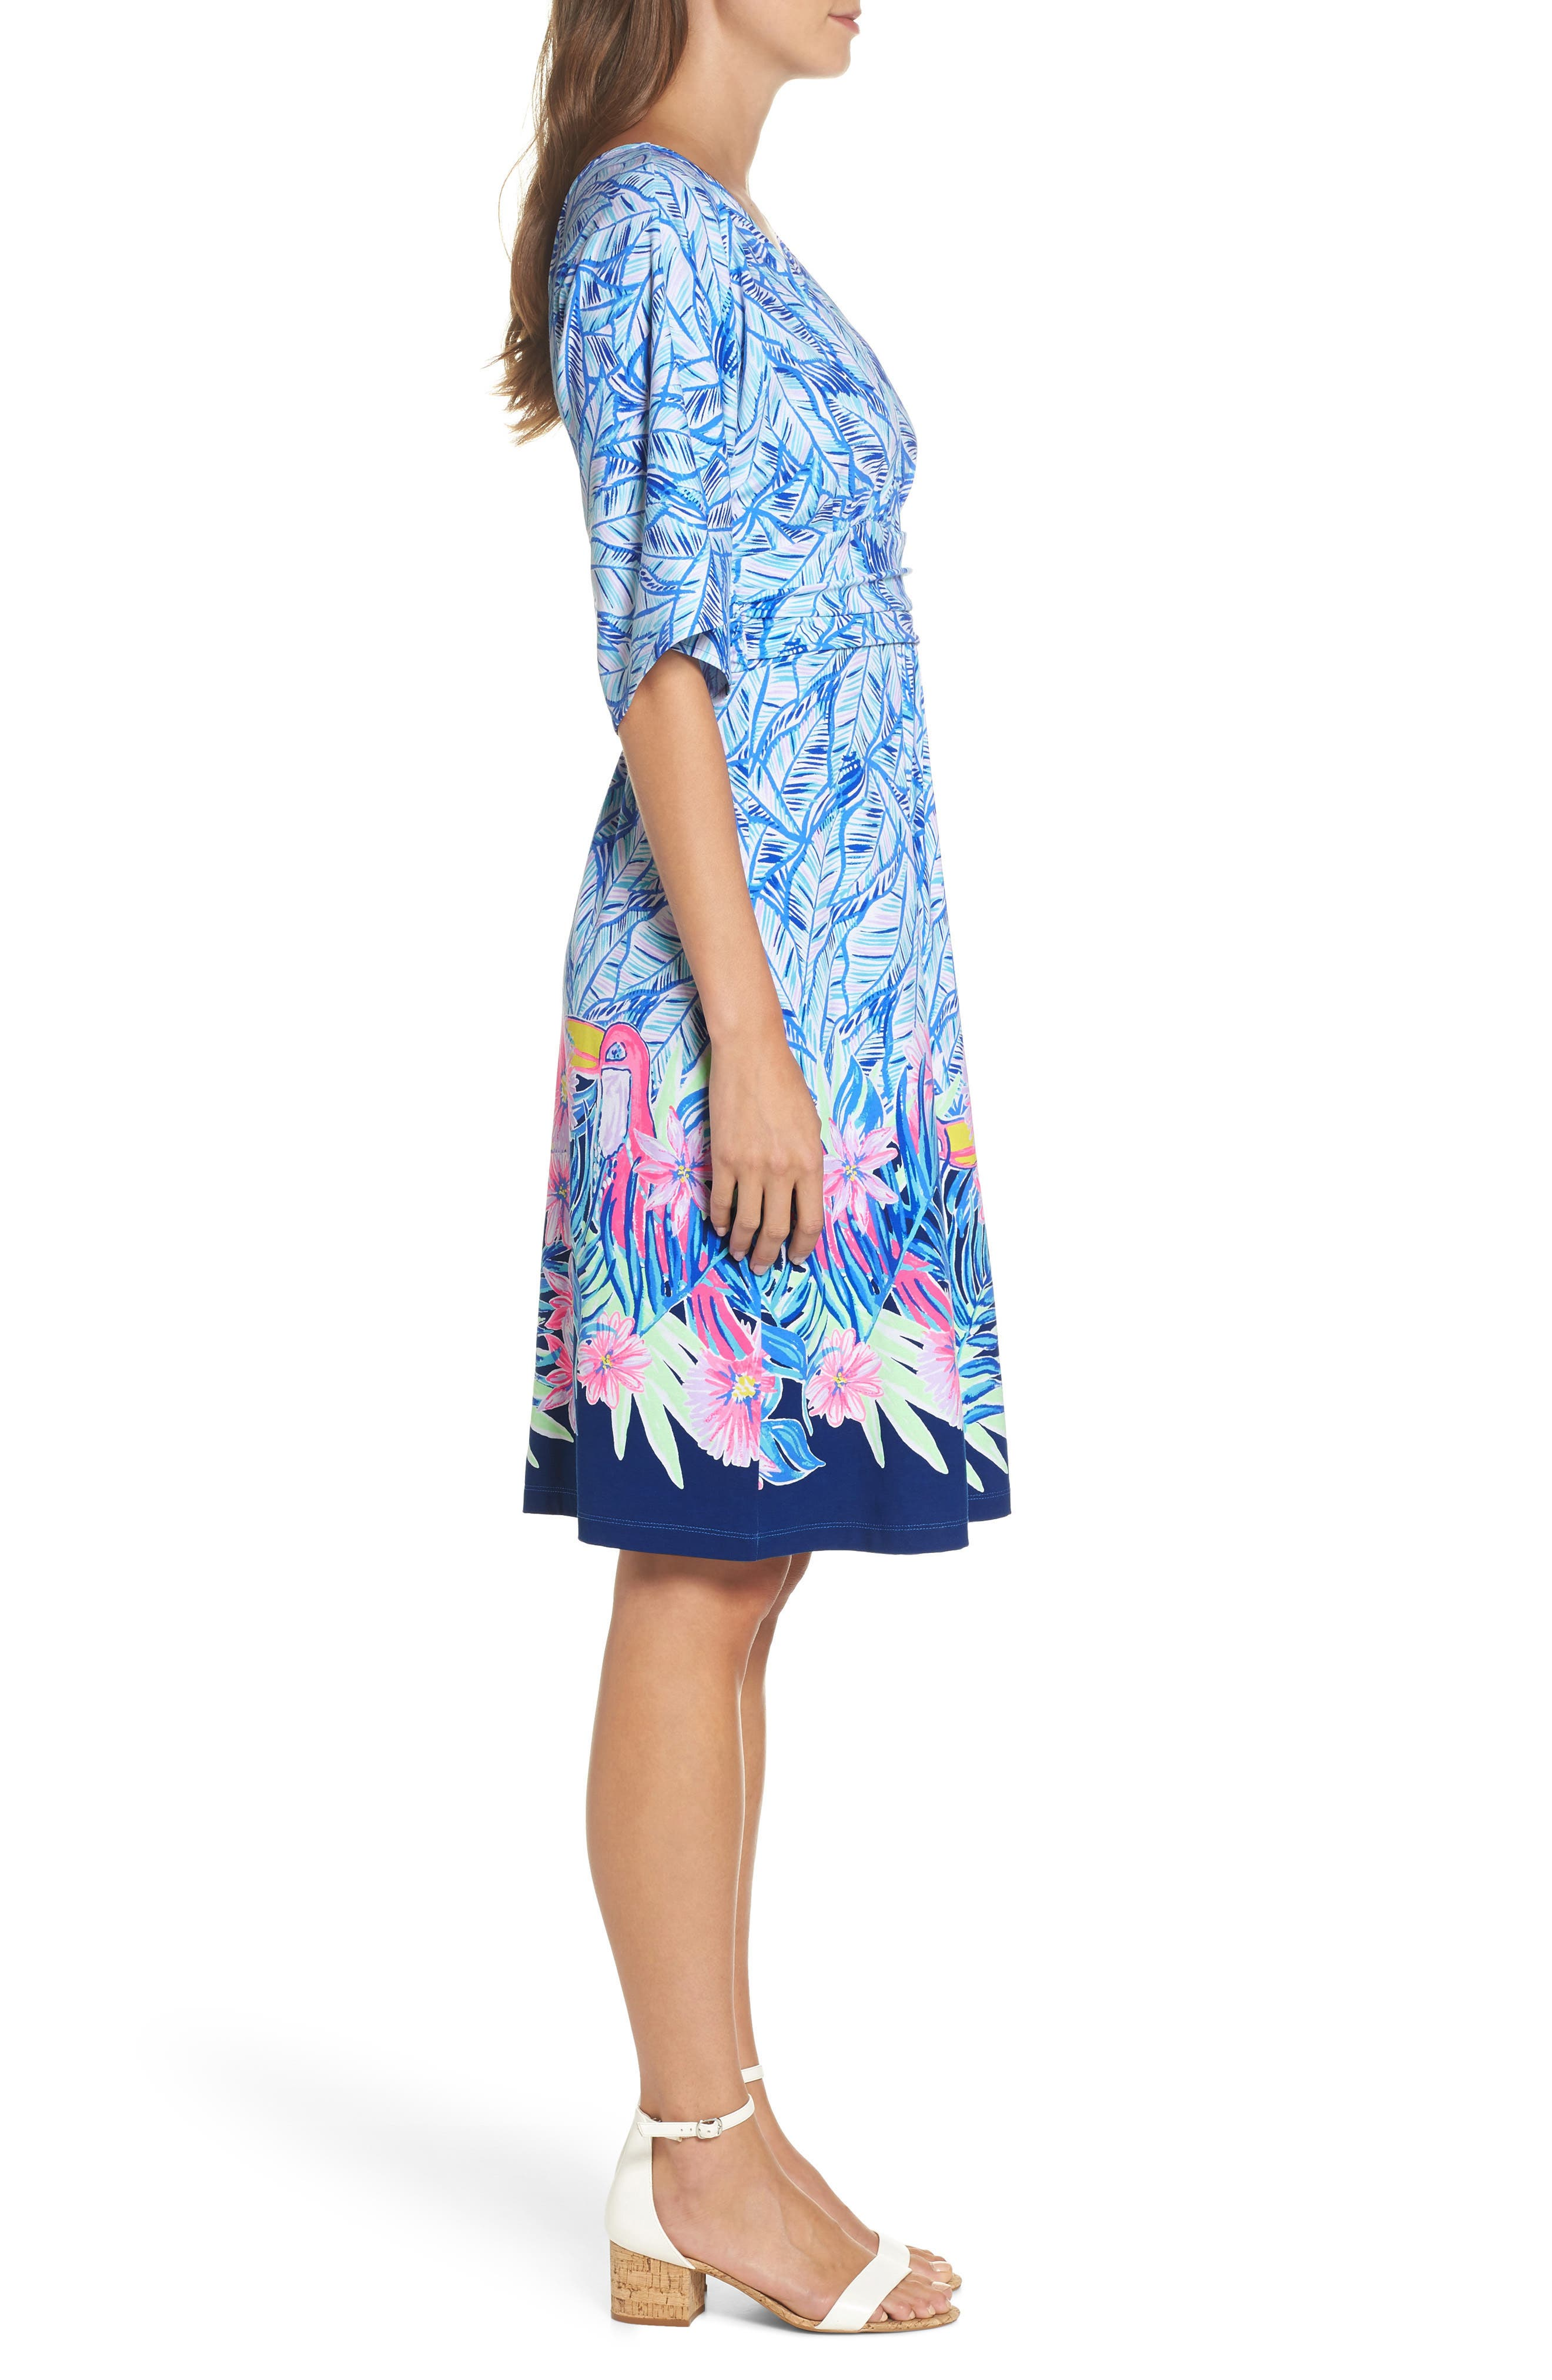 Parigi Print Dress,                             Alternate thumbnail 3, color,                             420